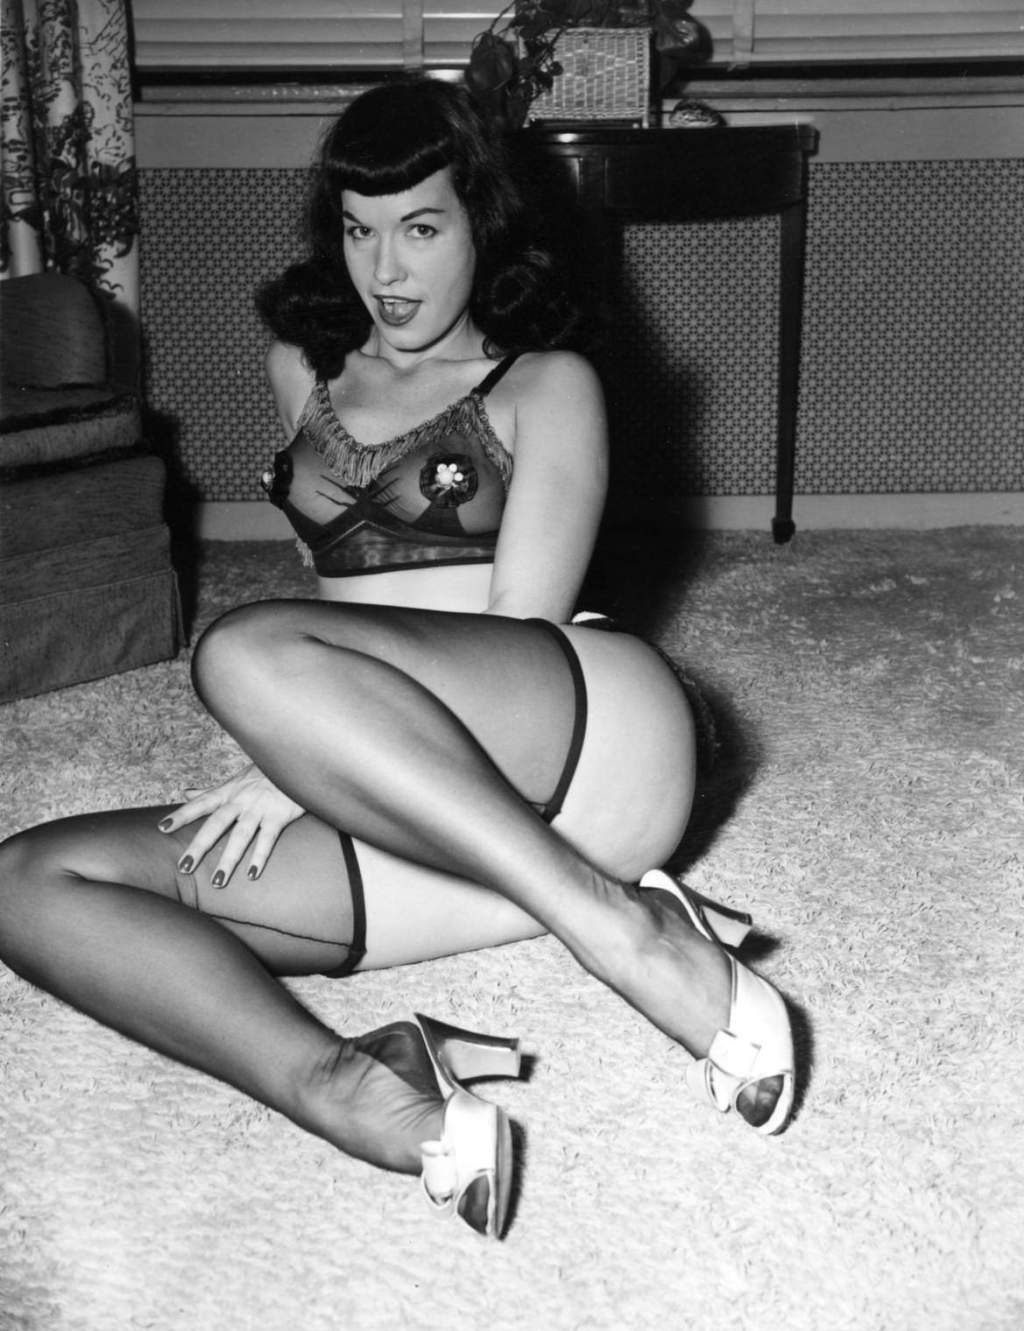 Bettie Page Hd bettie page photo 3 of 29 pics, wallpaper - photo #254472